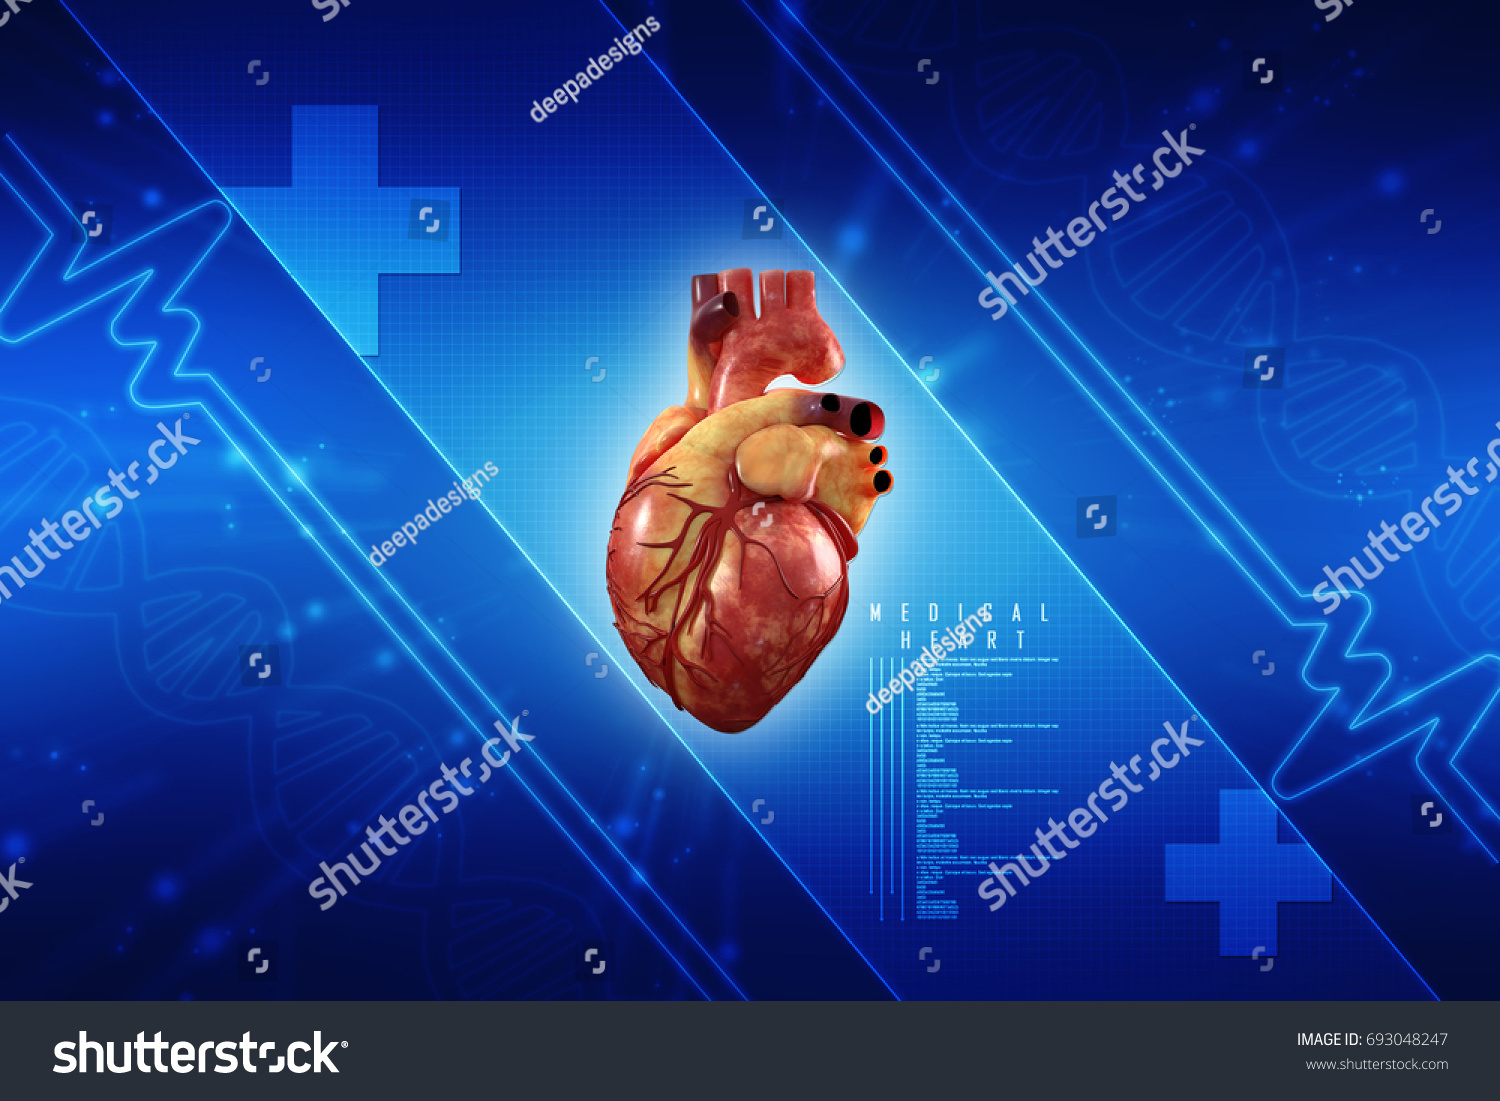 3 D Anatomy Human Heart Stock Illustration 693048247 - Shutterstock